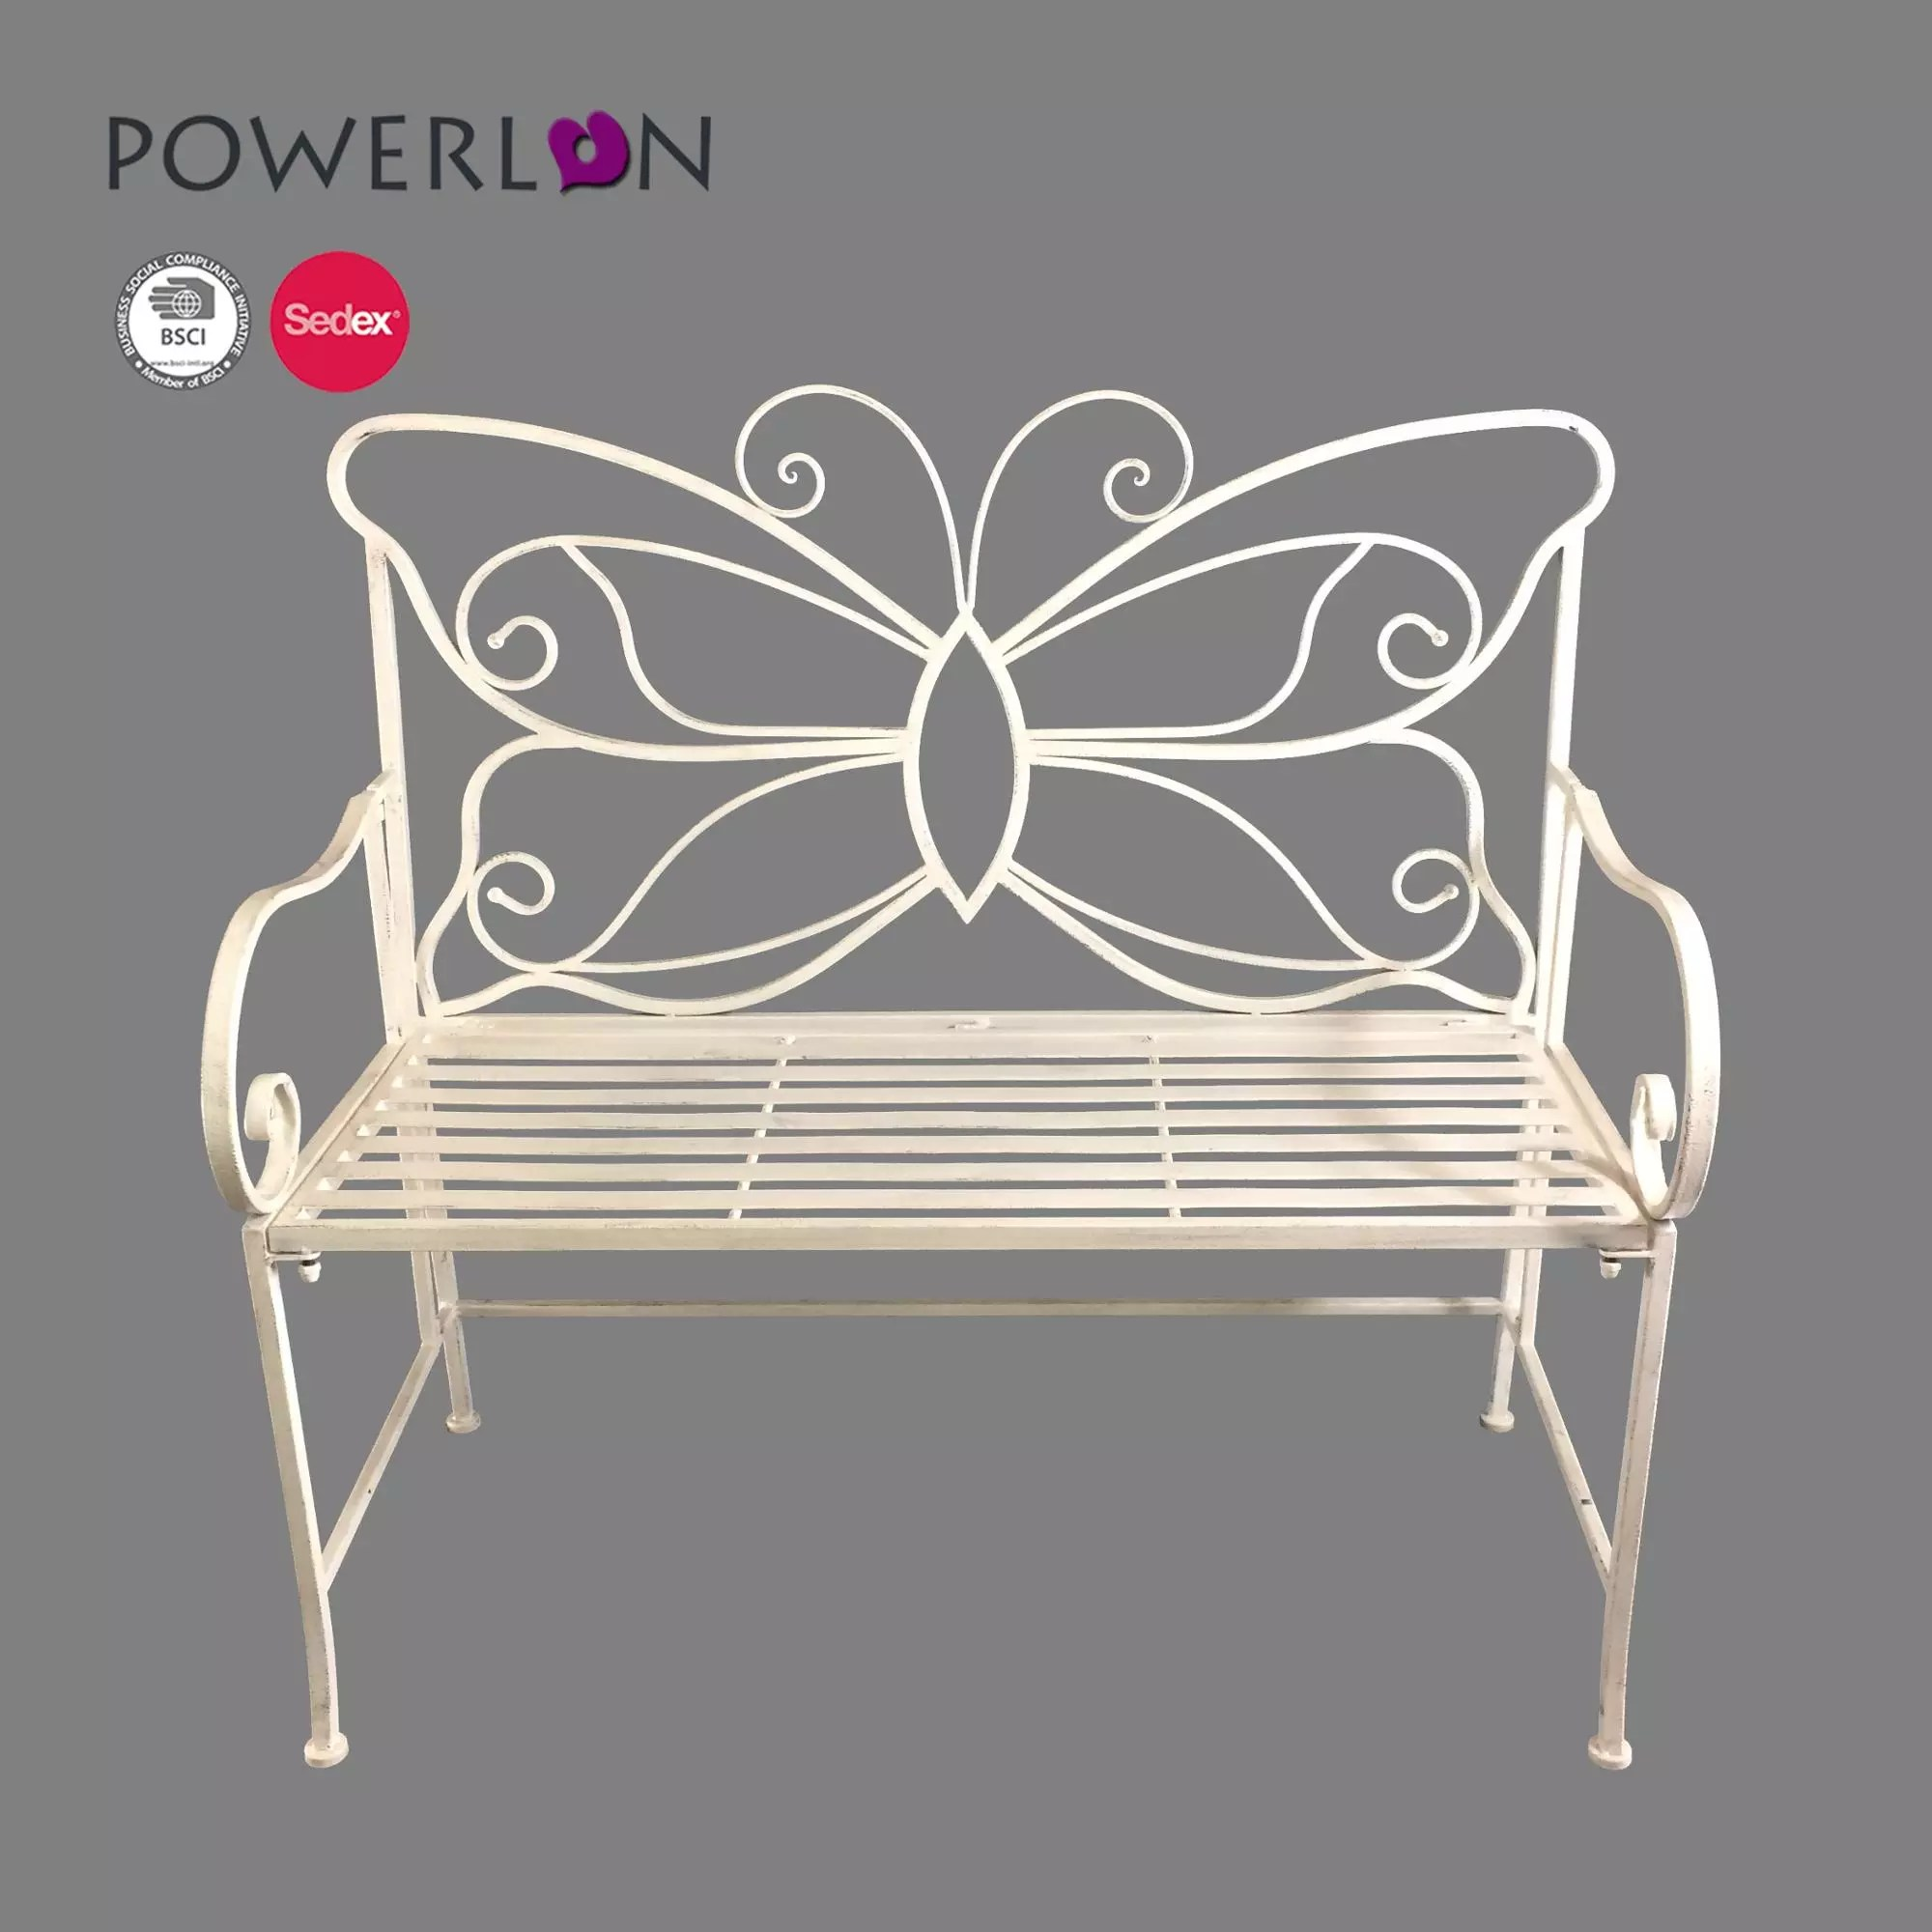 vintage metal garden folding butterfly bench for patio chair buy folding butterfly chair metal bench seat street furniture bench product on